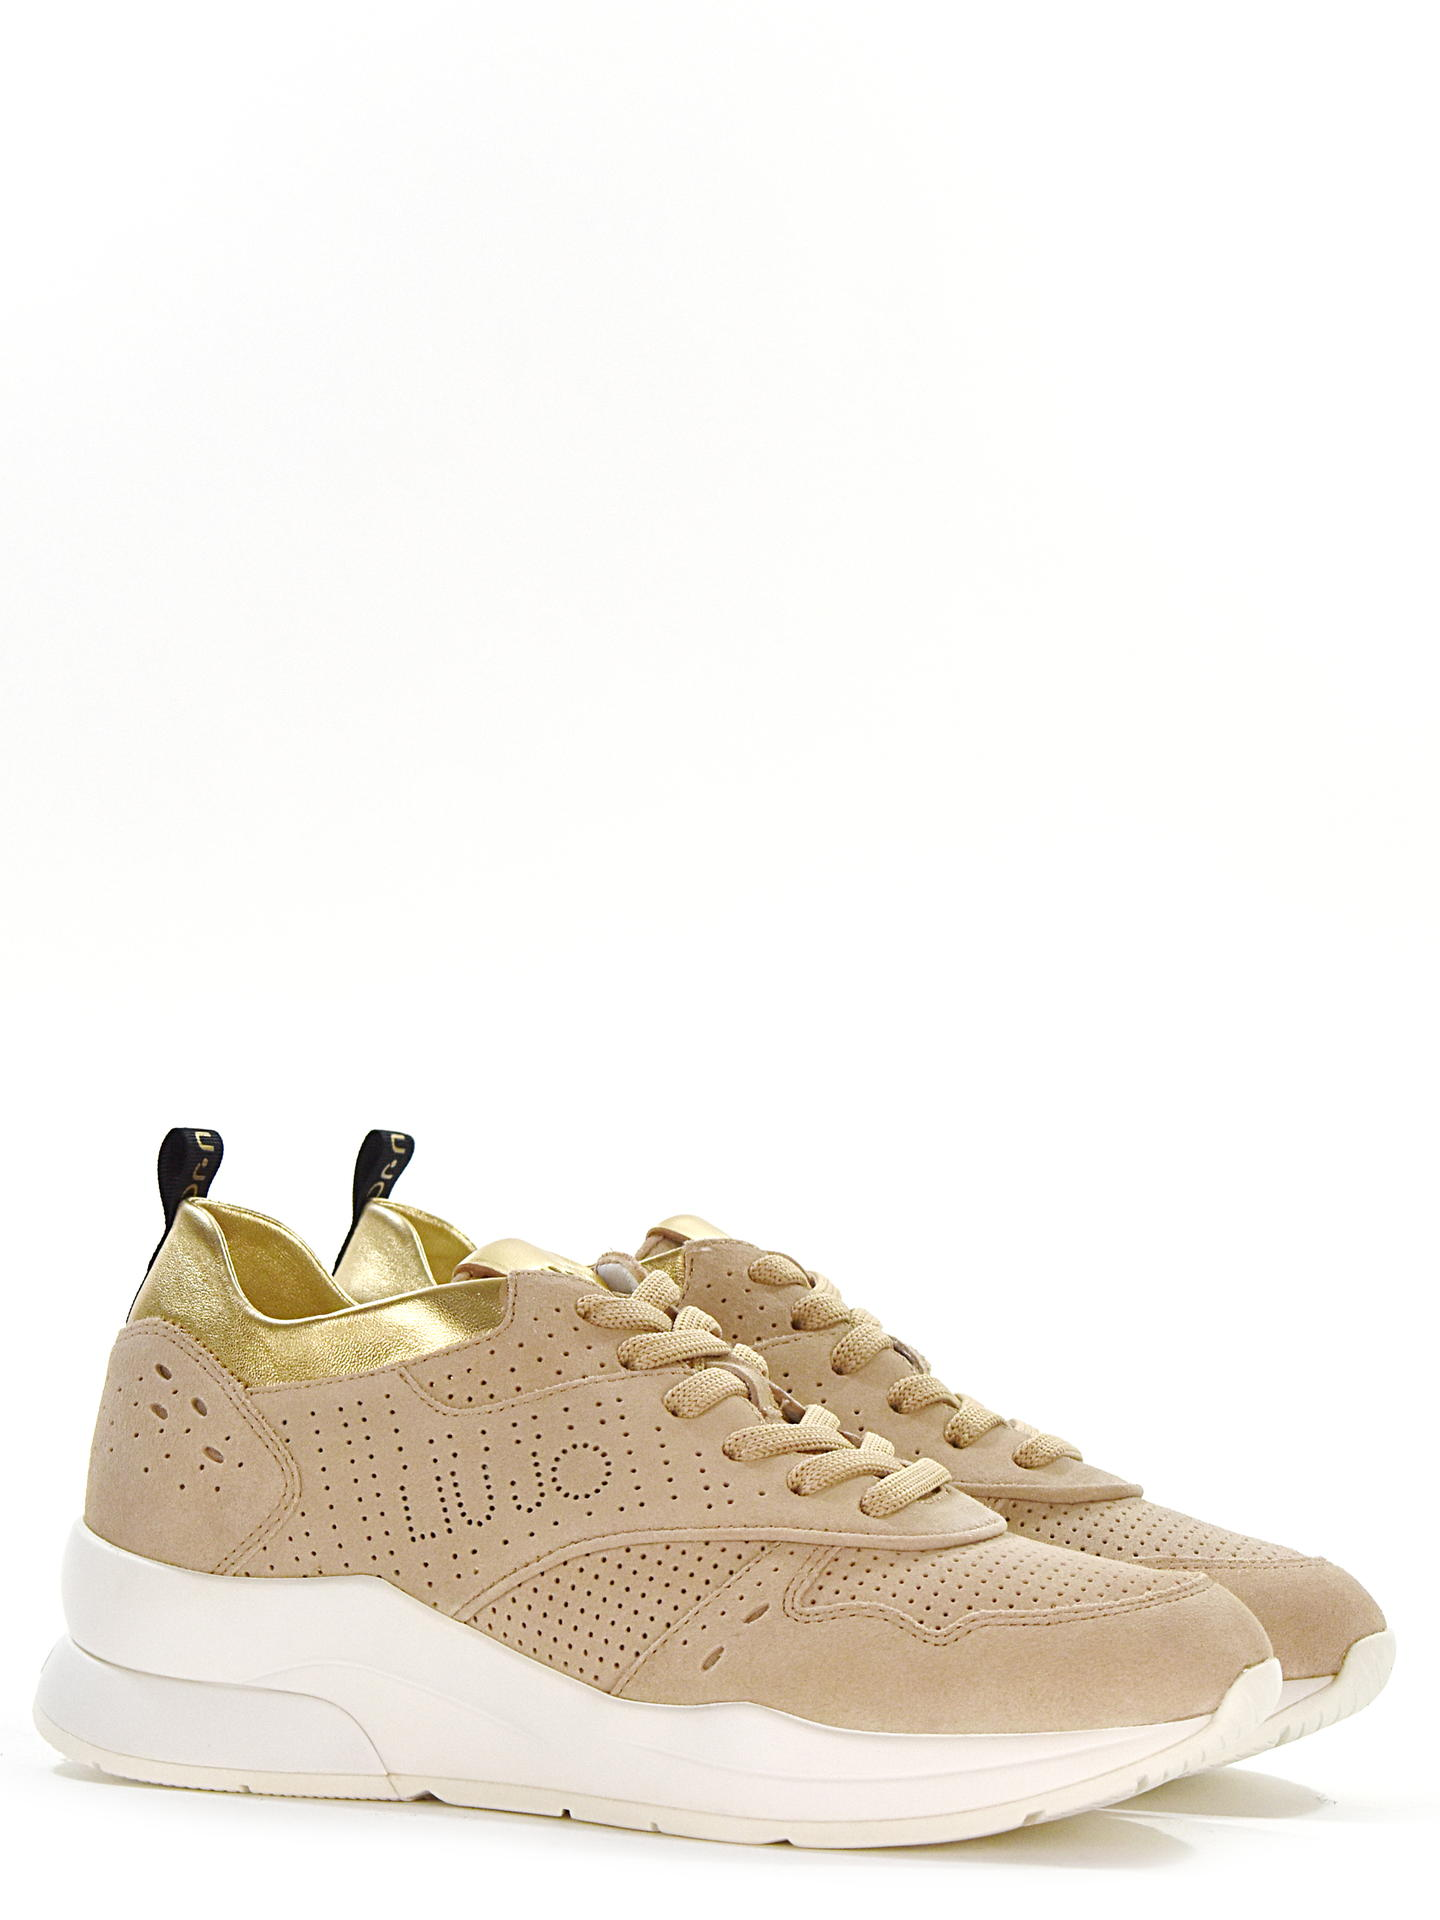 new product fa836 93ef1 SNEAKERS LIU.JO SHOES B19009PX025 BEIGE | DESIDERIO COLLECTION